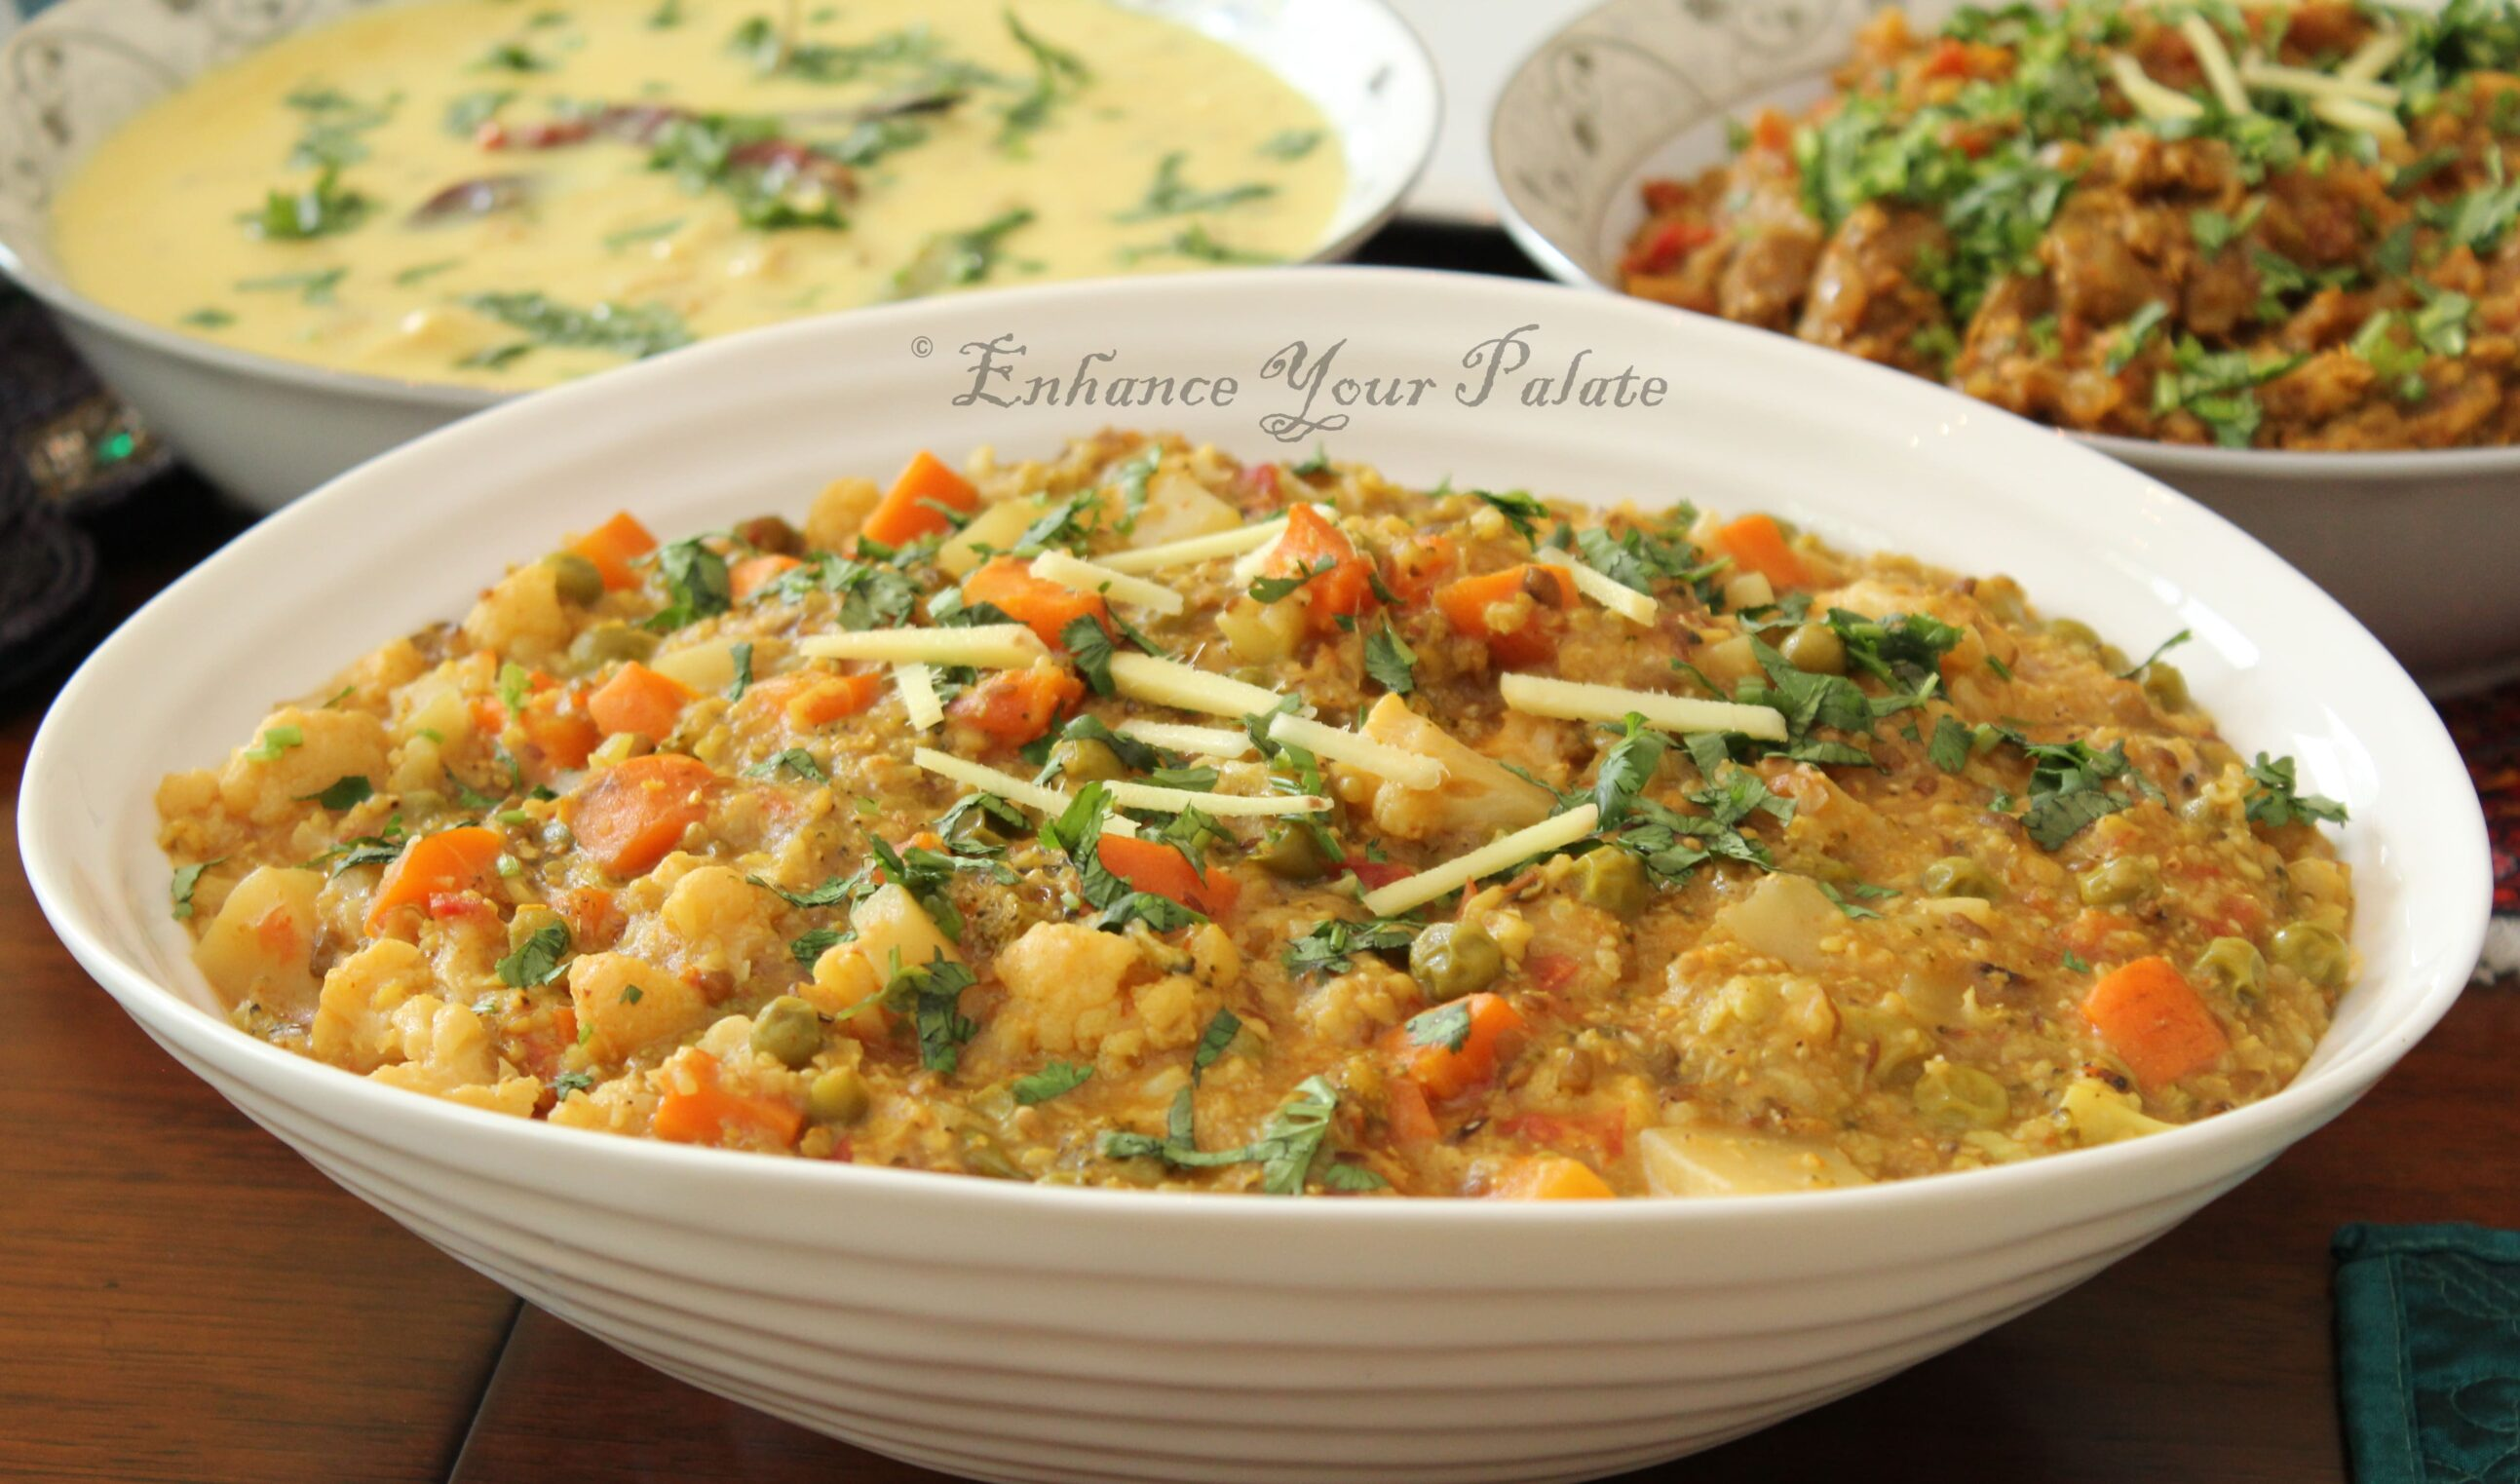 Vegetable Pearl Millet Recipe - Bajra Khichdi (One Pot Meal) Bajra (Pearl Millet) Khichdi makes a perfect healthy one pot meal. Pearl Millet (Bajra) has high protein content. Freekeh is the latest in super-foods. Both Instant Pot and Stove Top recipe included.